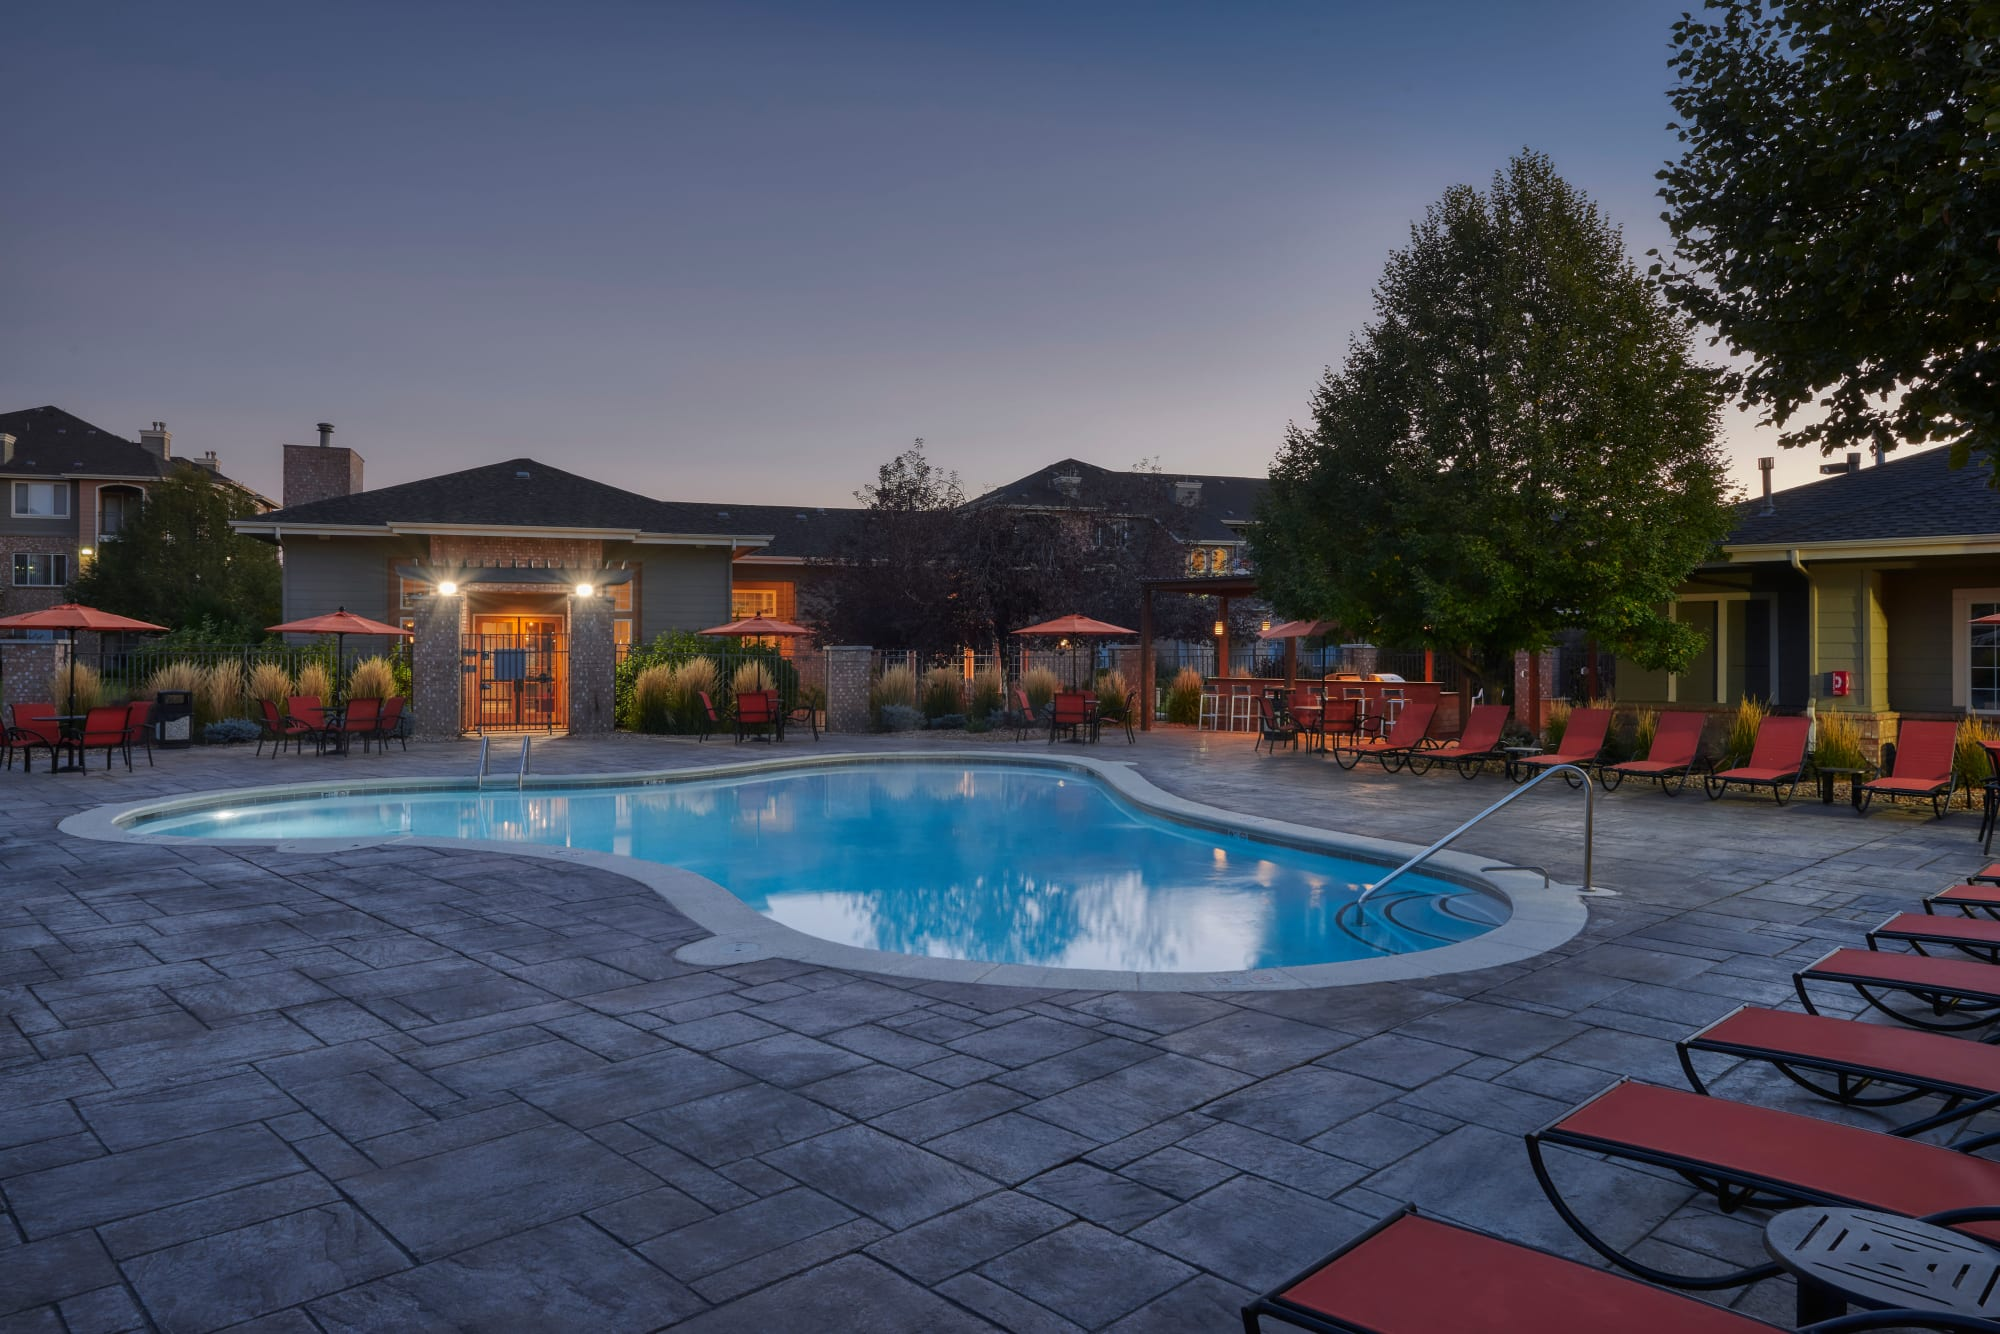 Pool Resort Style at sunrise at Hawthorne Hill Apartments